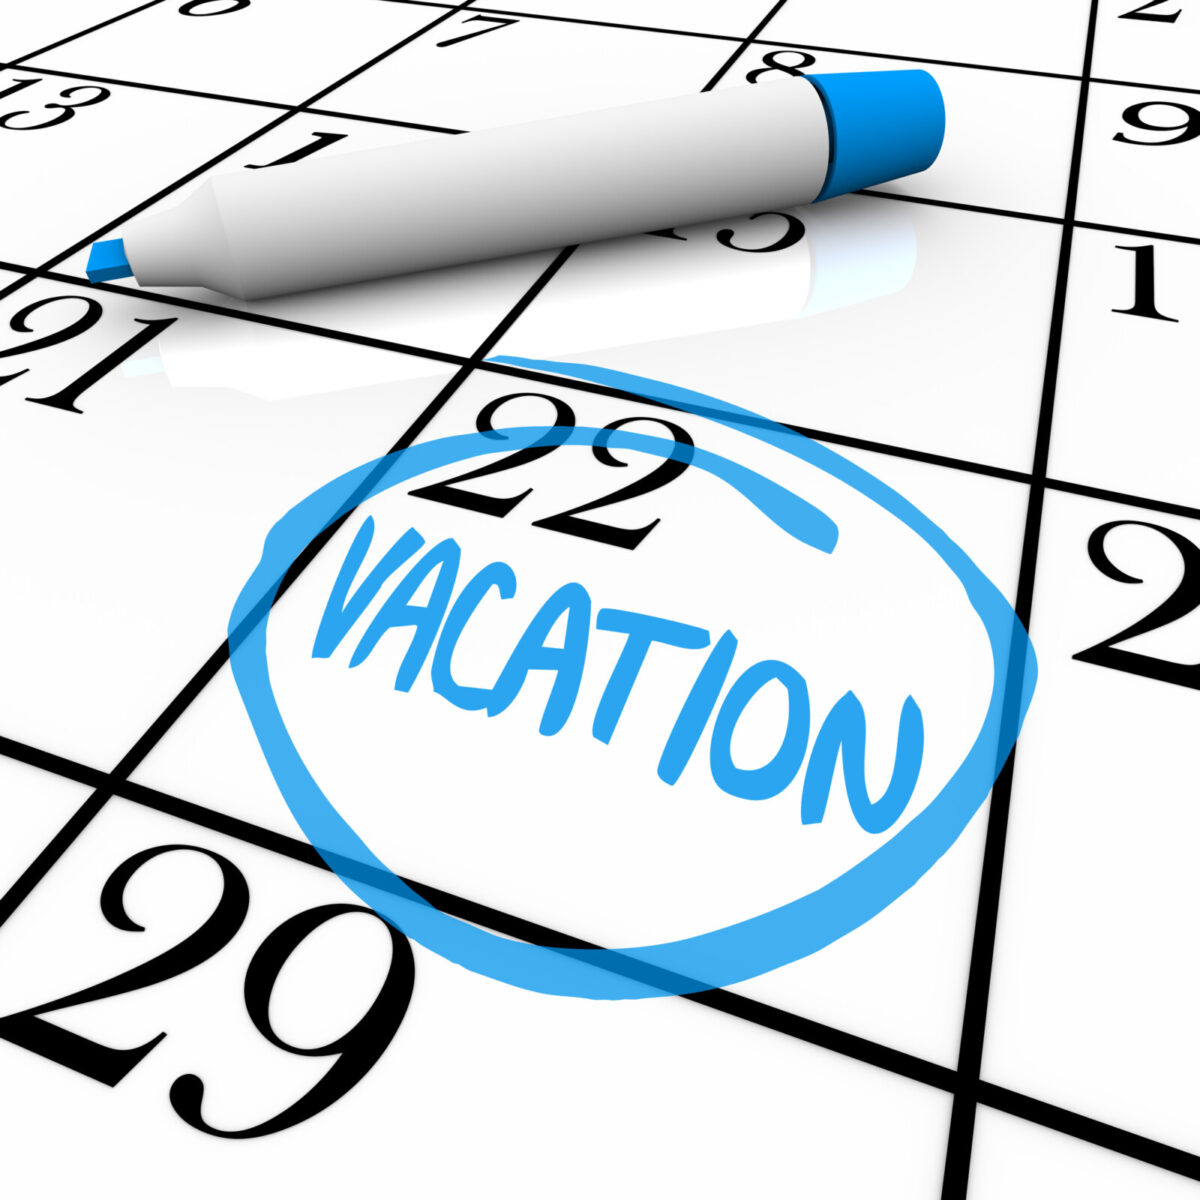 Vacation day on calendar